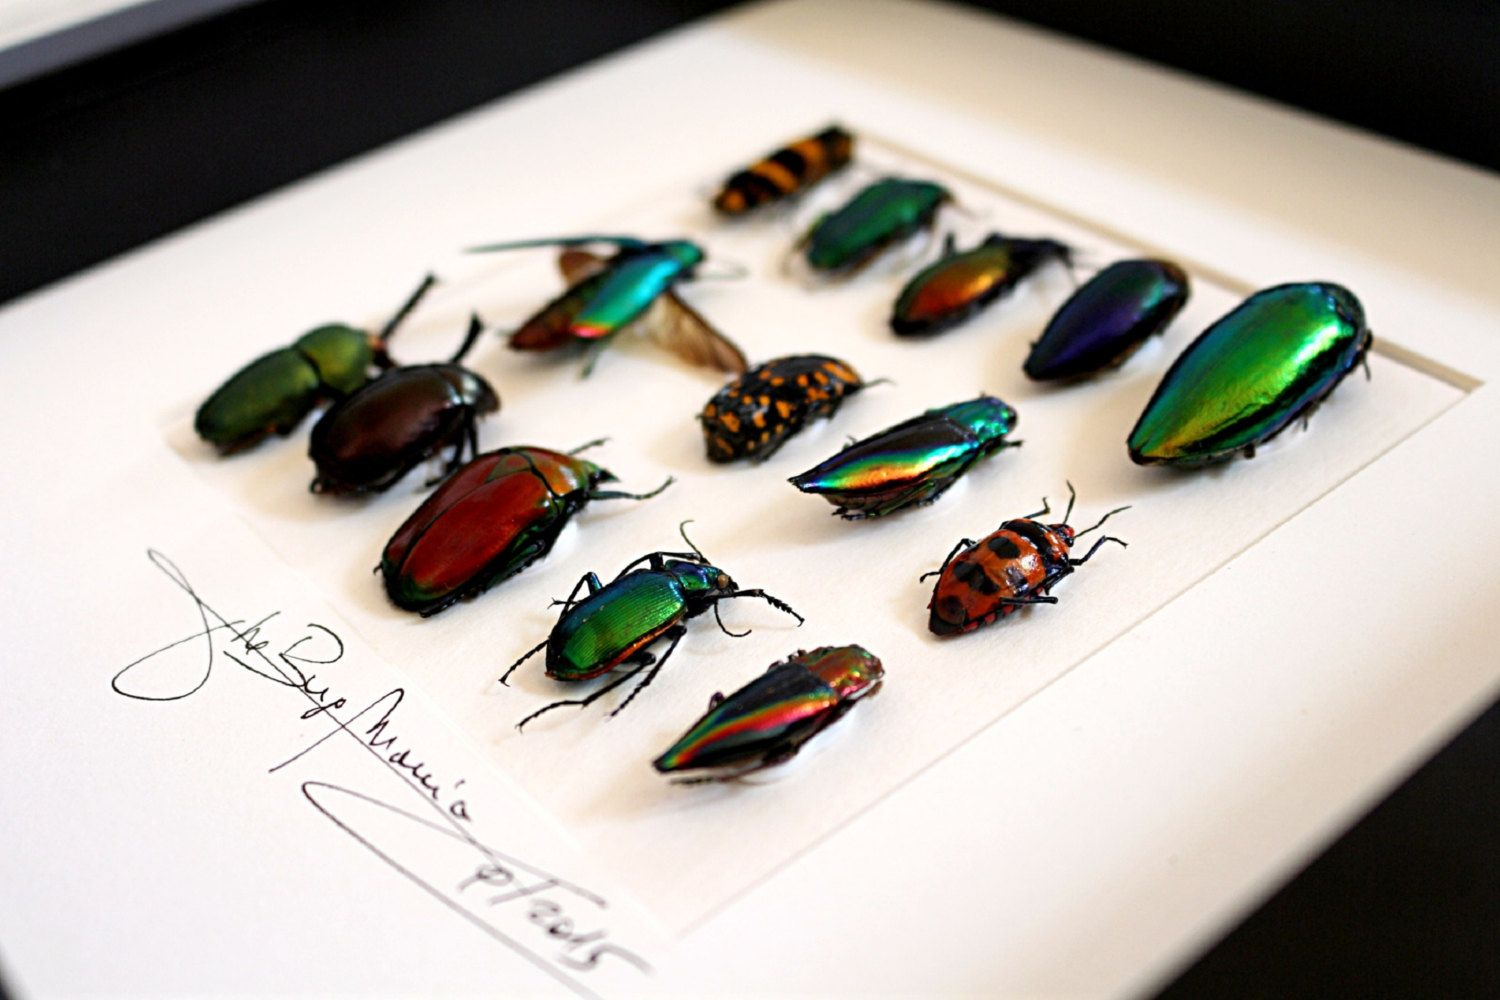 Artframe with real insects : Topquality display with beautiful insects of the world by Alanscollectibles on Etsy